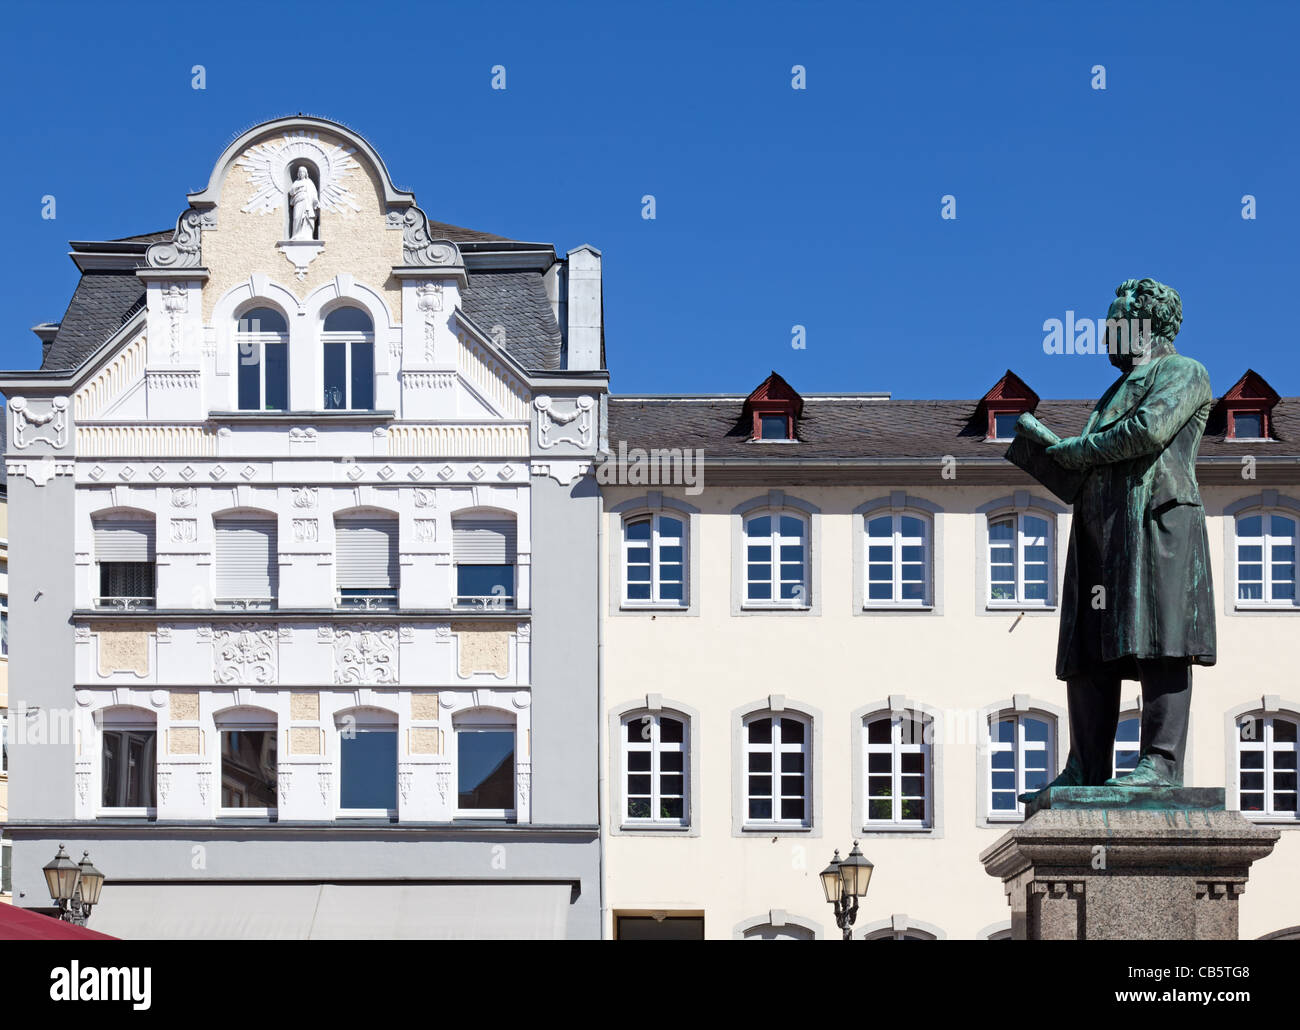 The statue of Johannes Mueller and historical buildings in the beautiful altstadt (old town) of Koblenz's Jesuits - Stock Image